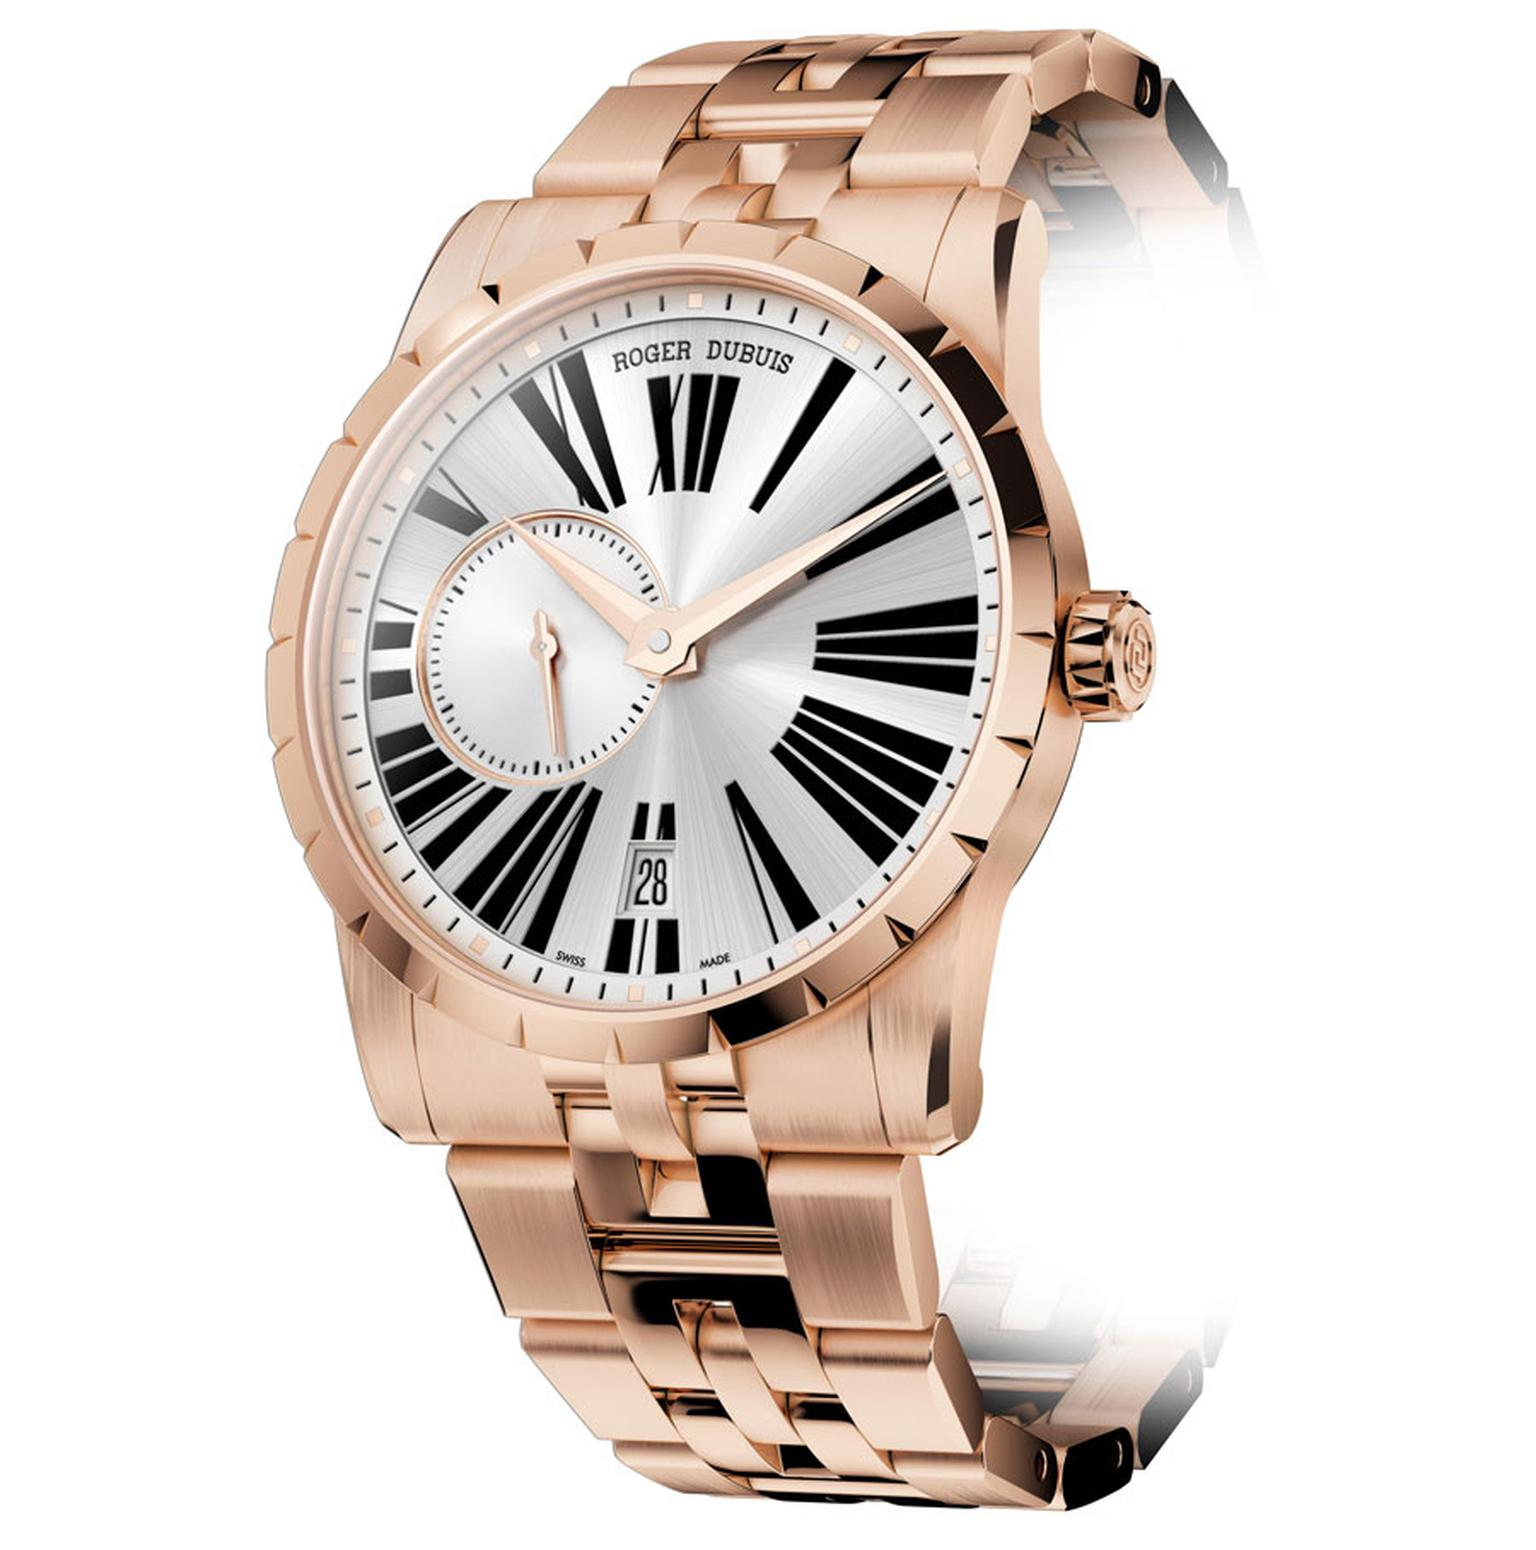 Roger-Dubuis-Excalibur-42-in-pink-gold